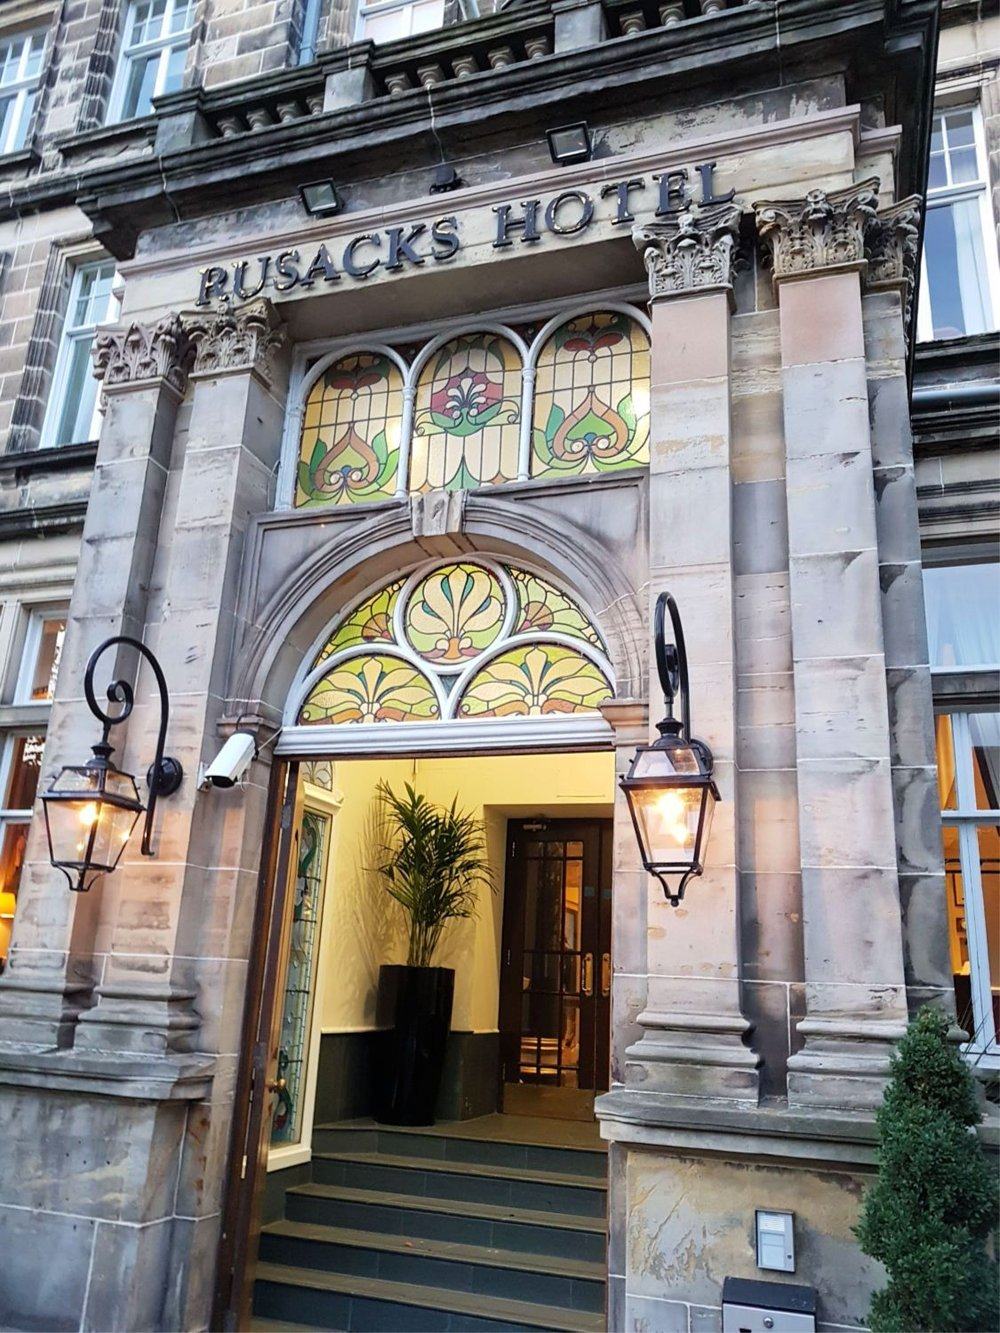 rusacks-st-andrews-hotel.jpg